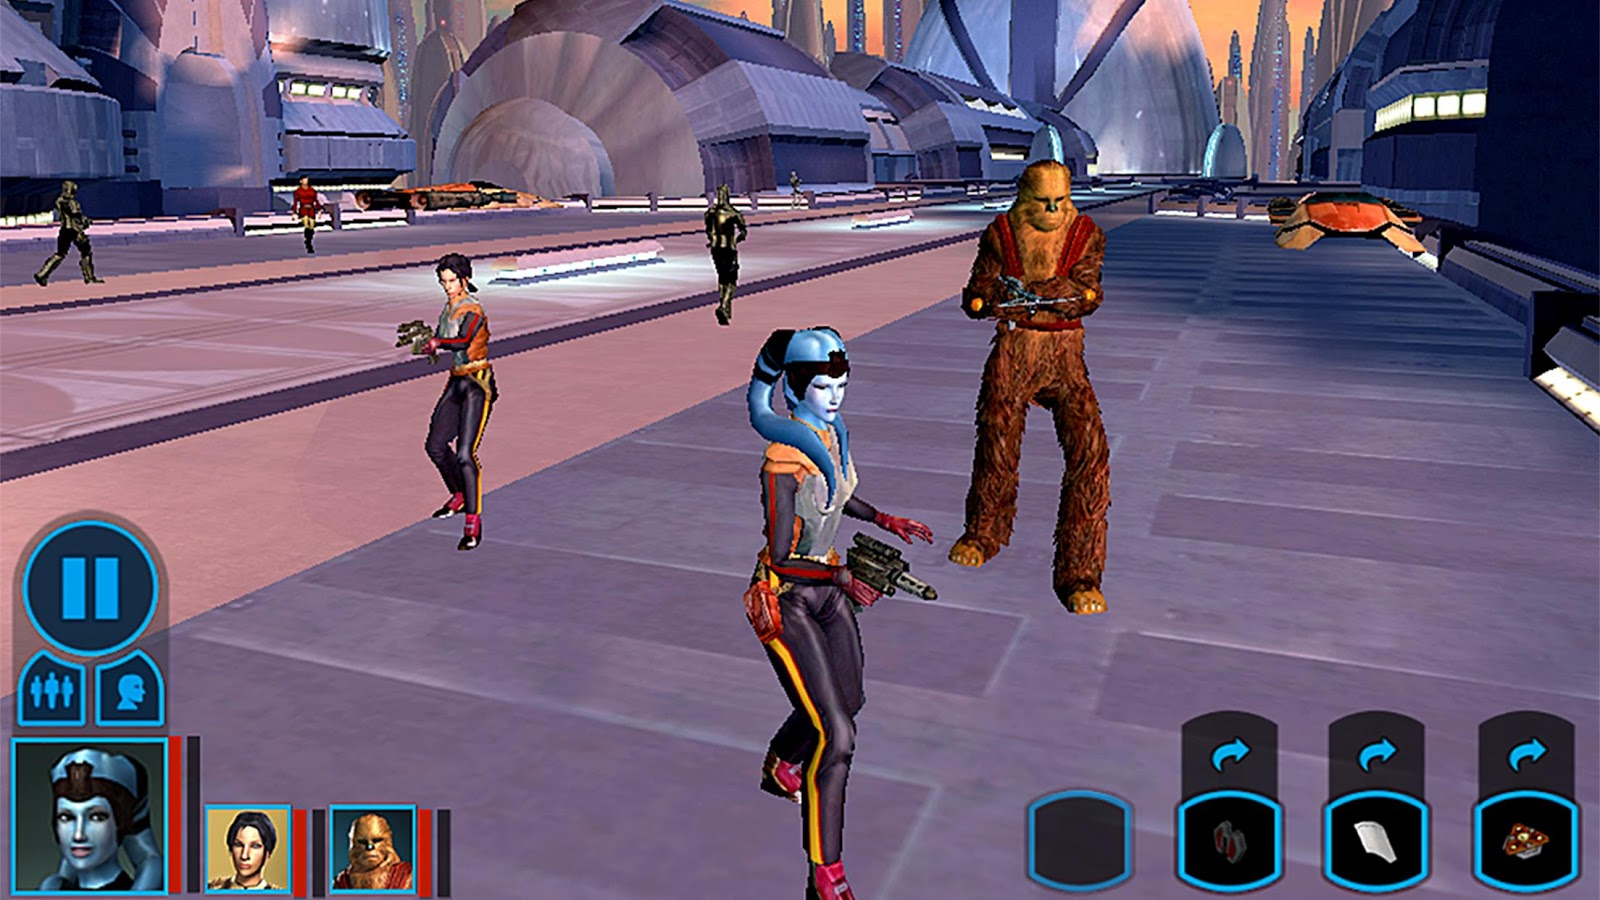 A femme looking person with long snake like hair and a bear-like humanoid creature holding weapons near some futuristic technological looking buildings. Other people stand in the background holding weapons.